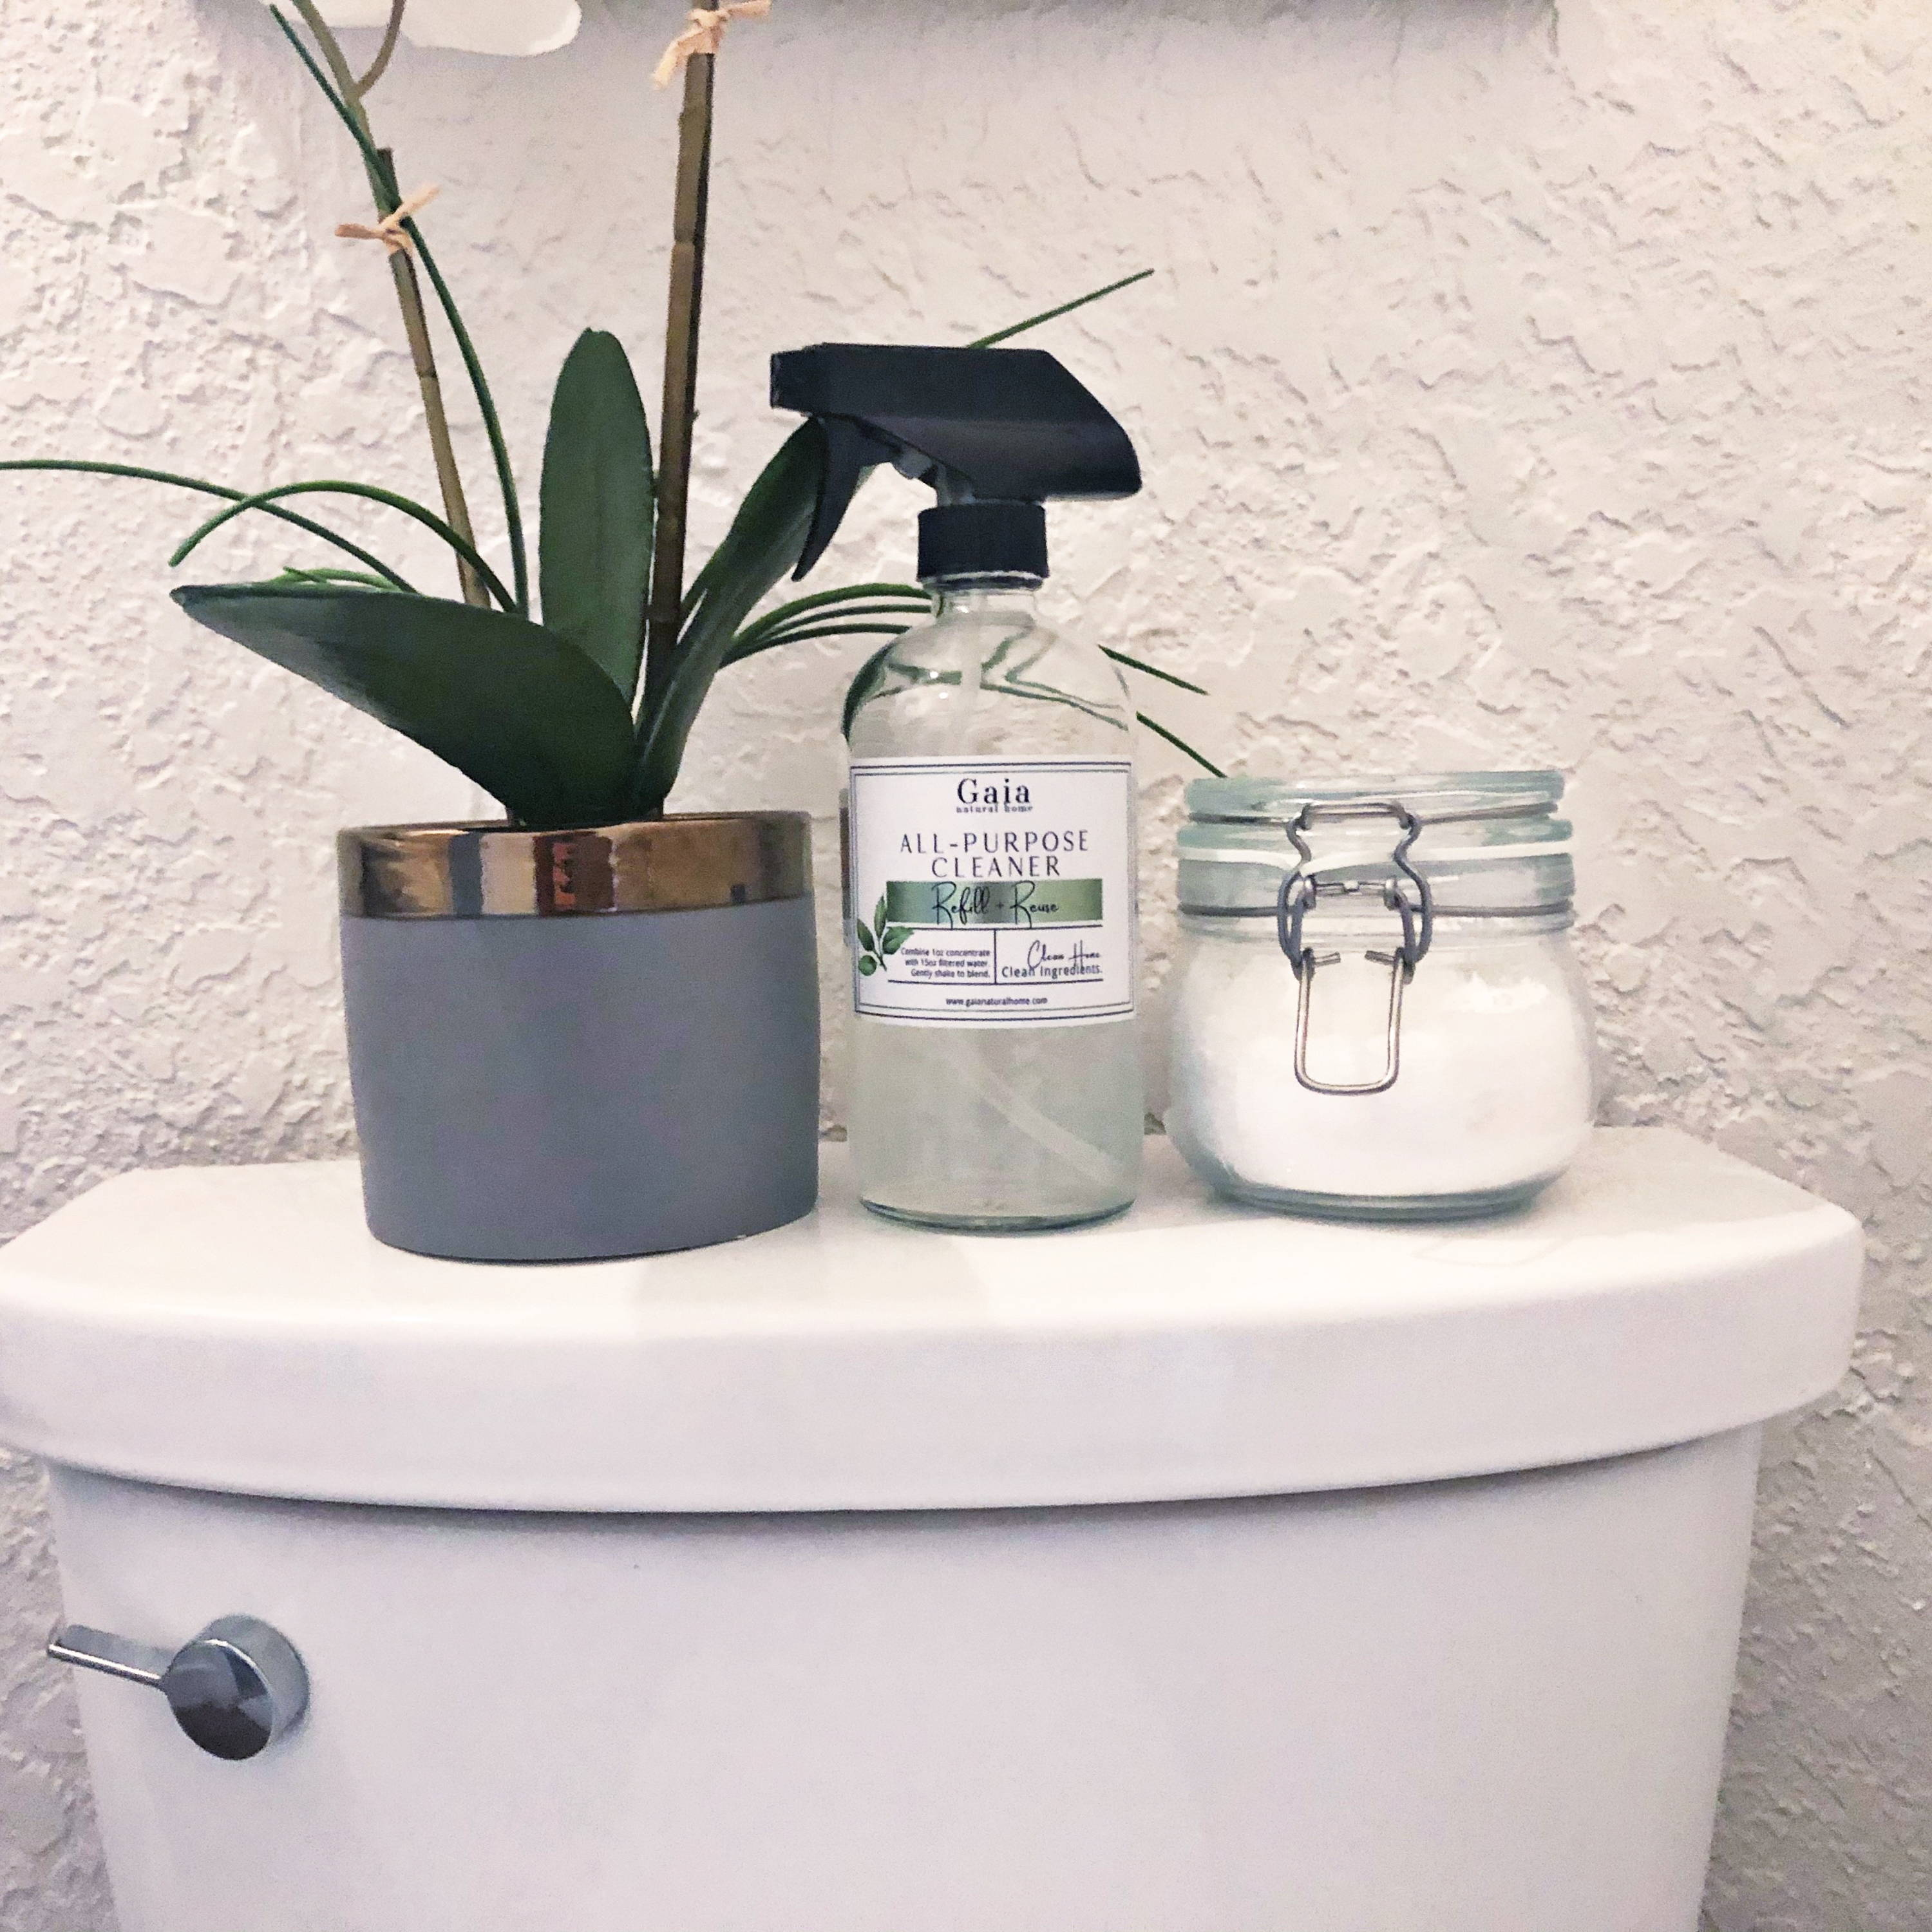 Using All-Purpose Concentrate to clean the toilet